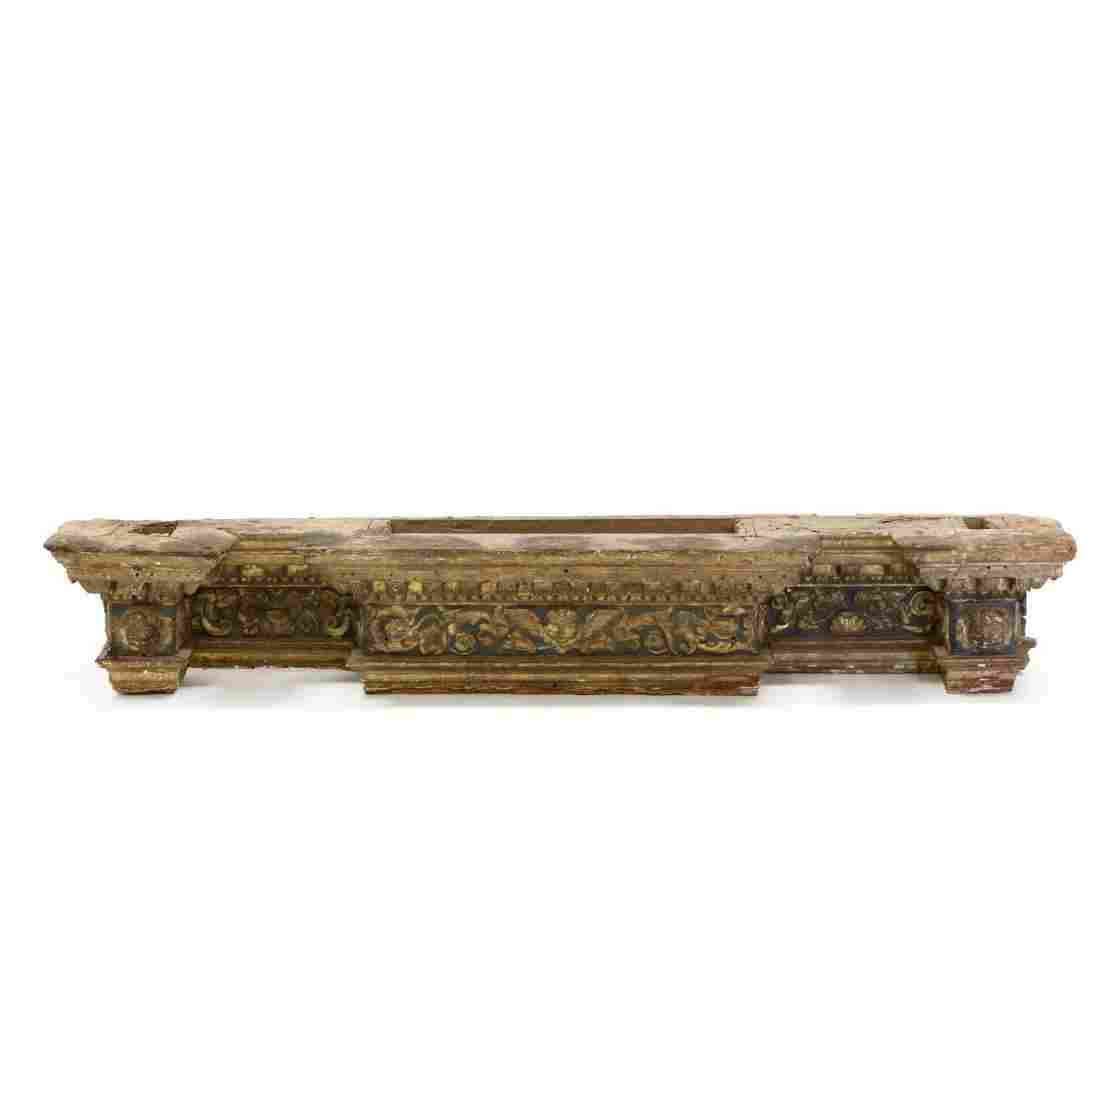 Italian Carved and Gilt Architectural Header